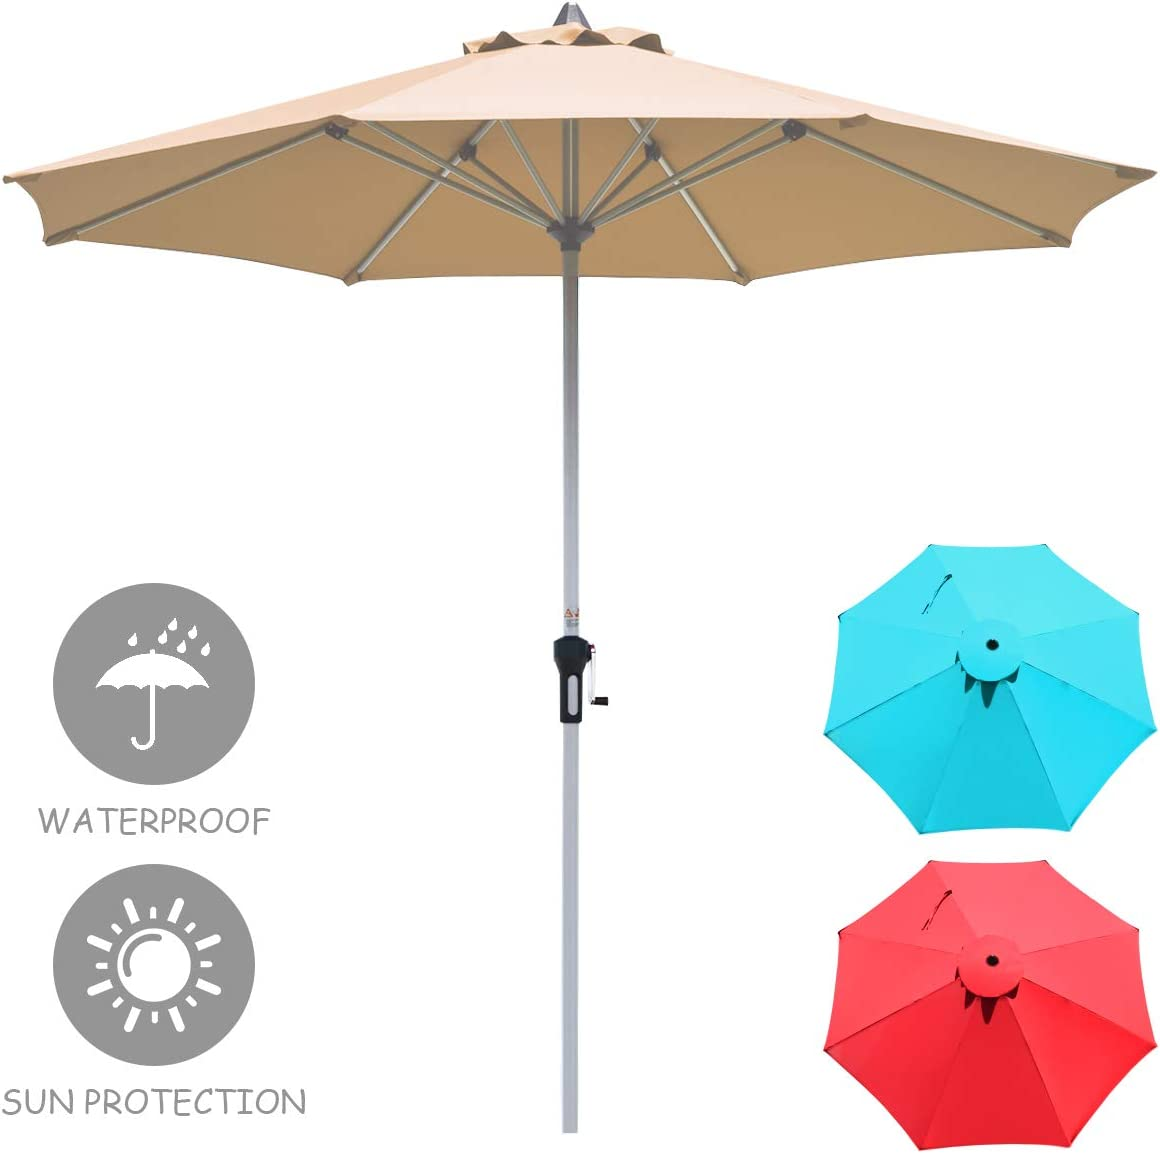 Tangkula 9 ft Patio Umbrella, Outdoor Market Table Umbrella with 1.5 Aluminum Pole, 8 Sturdy Ribs Crank for Garden, Lawn, Deck, Backyard Poolside Beige